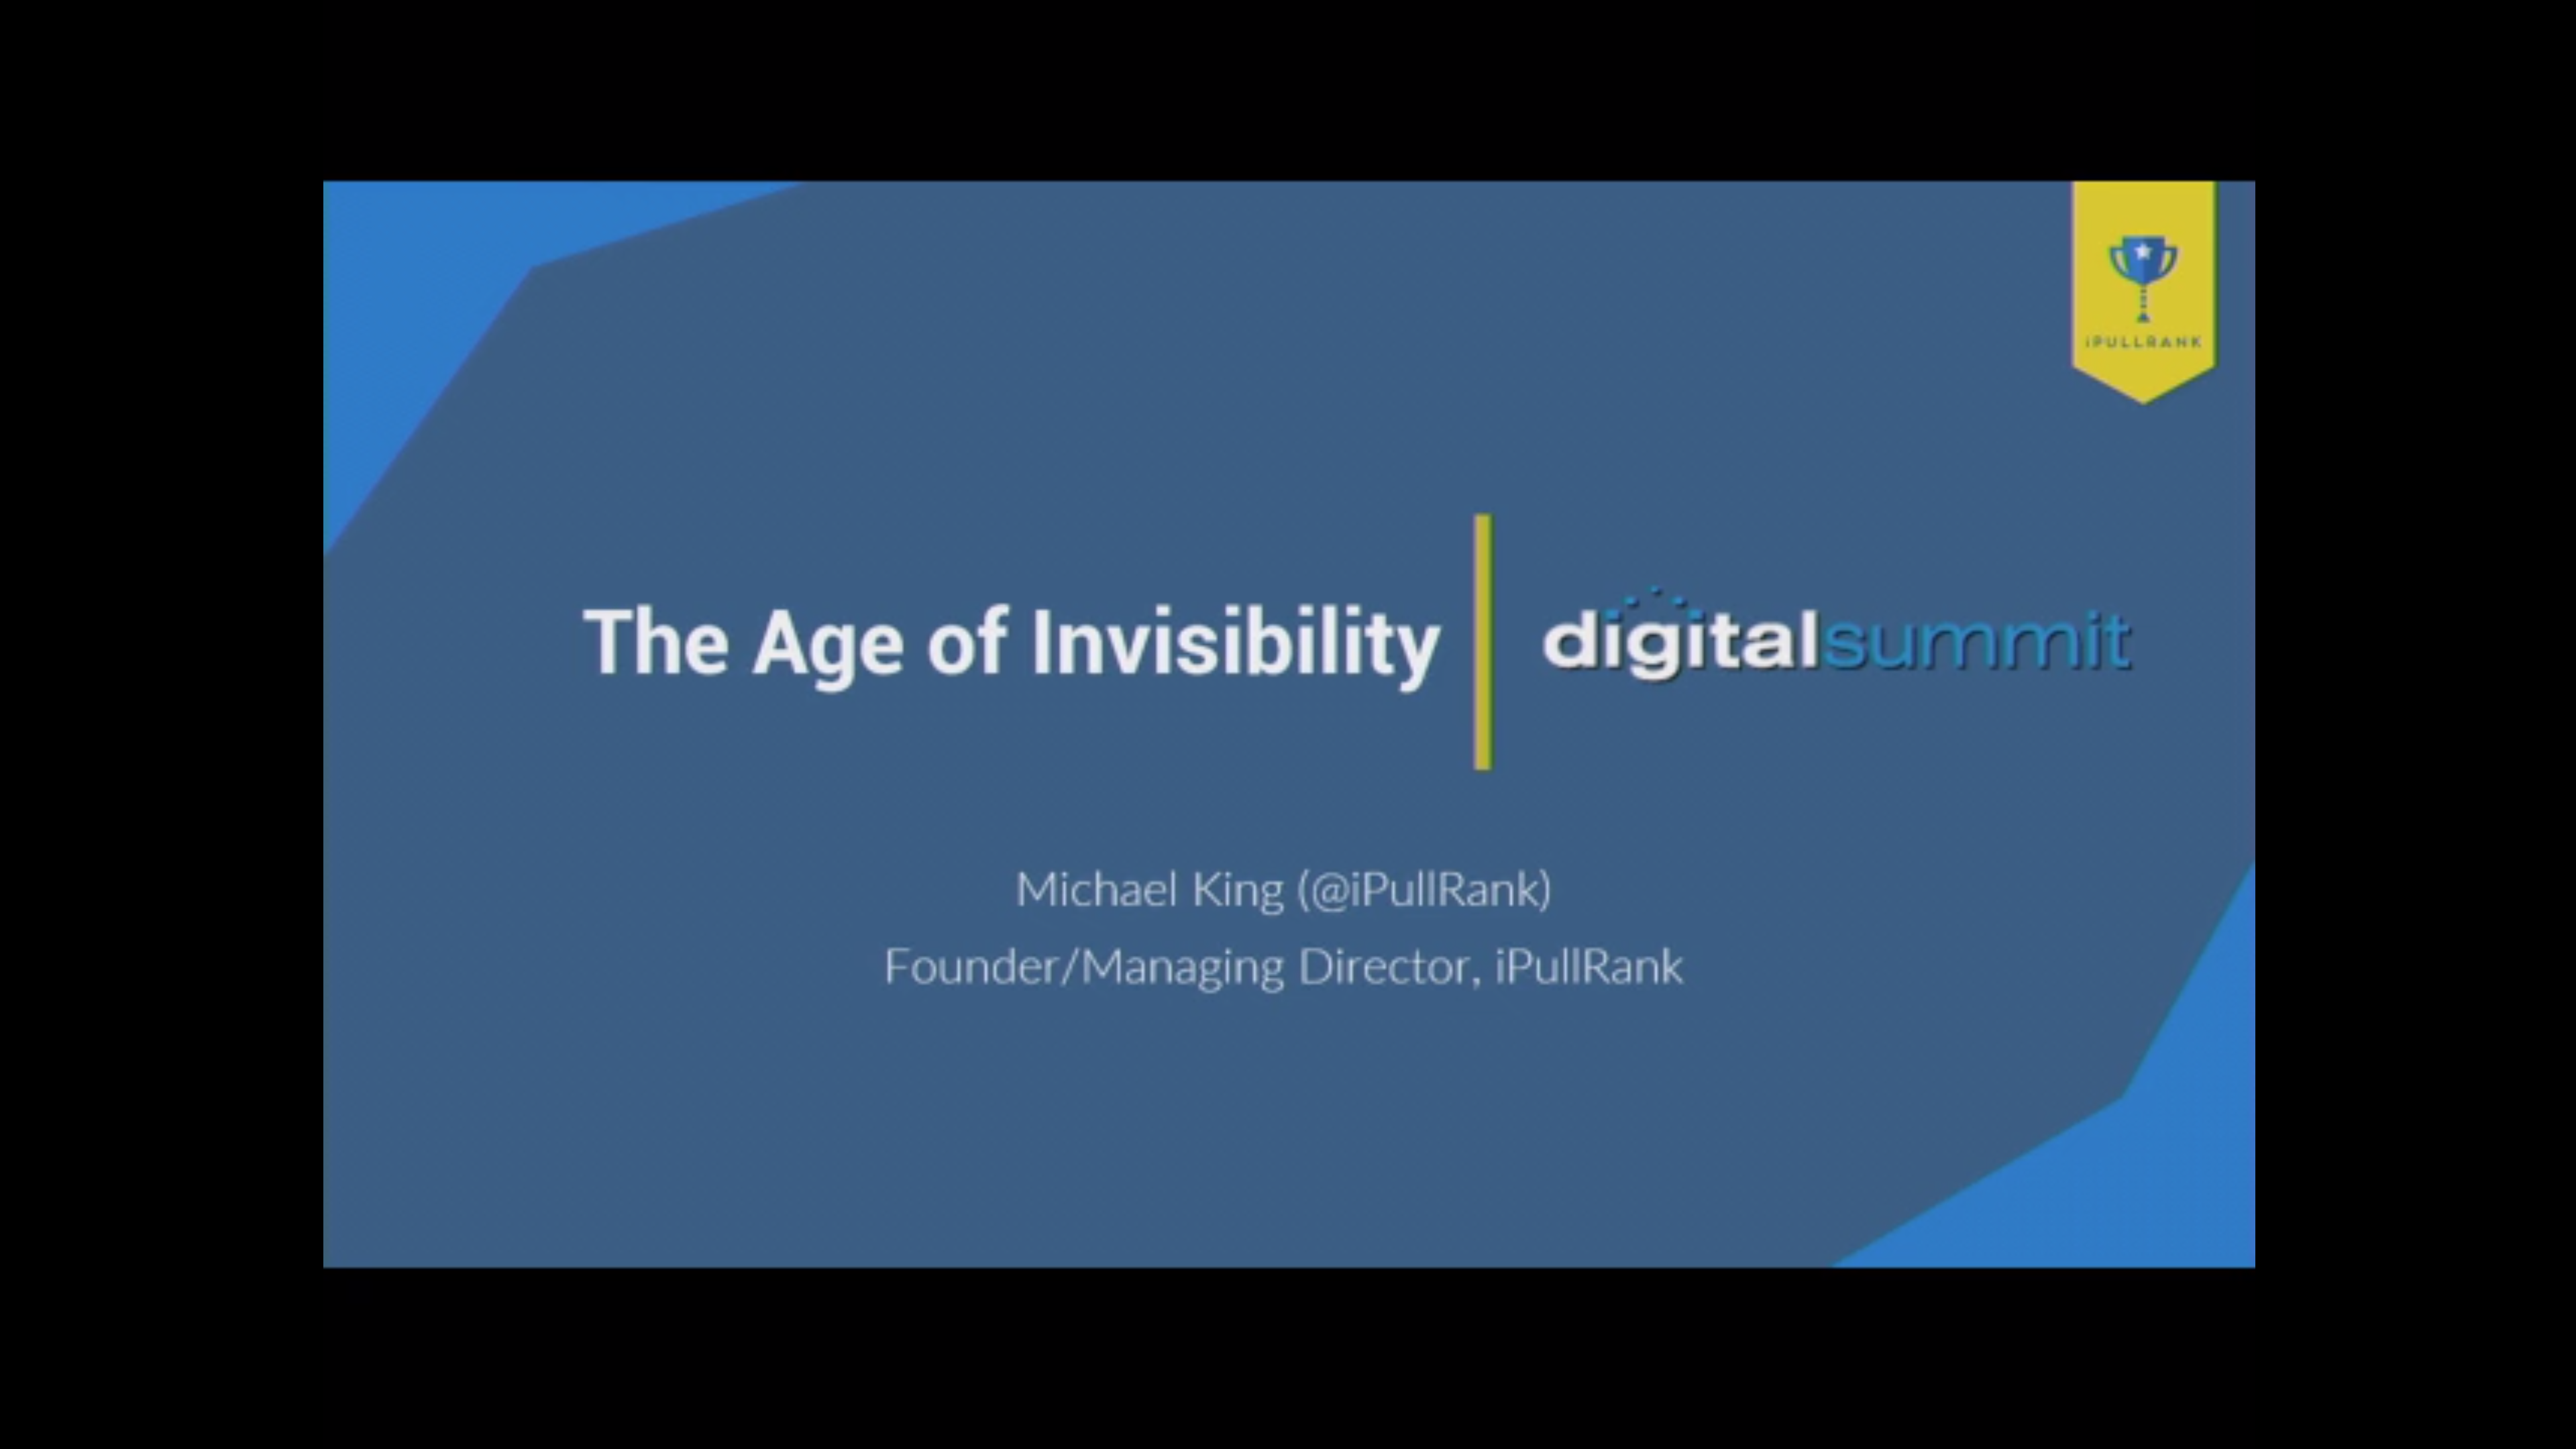 The Age of Invisibility